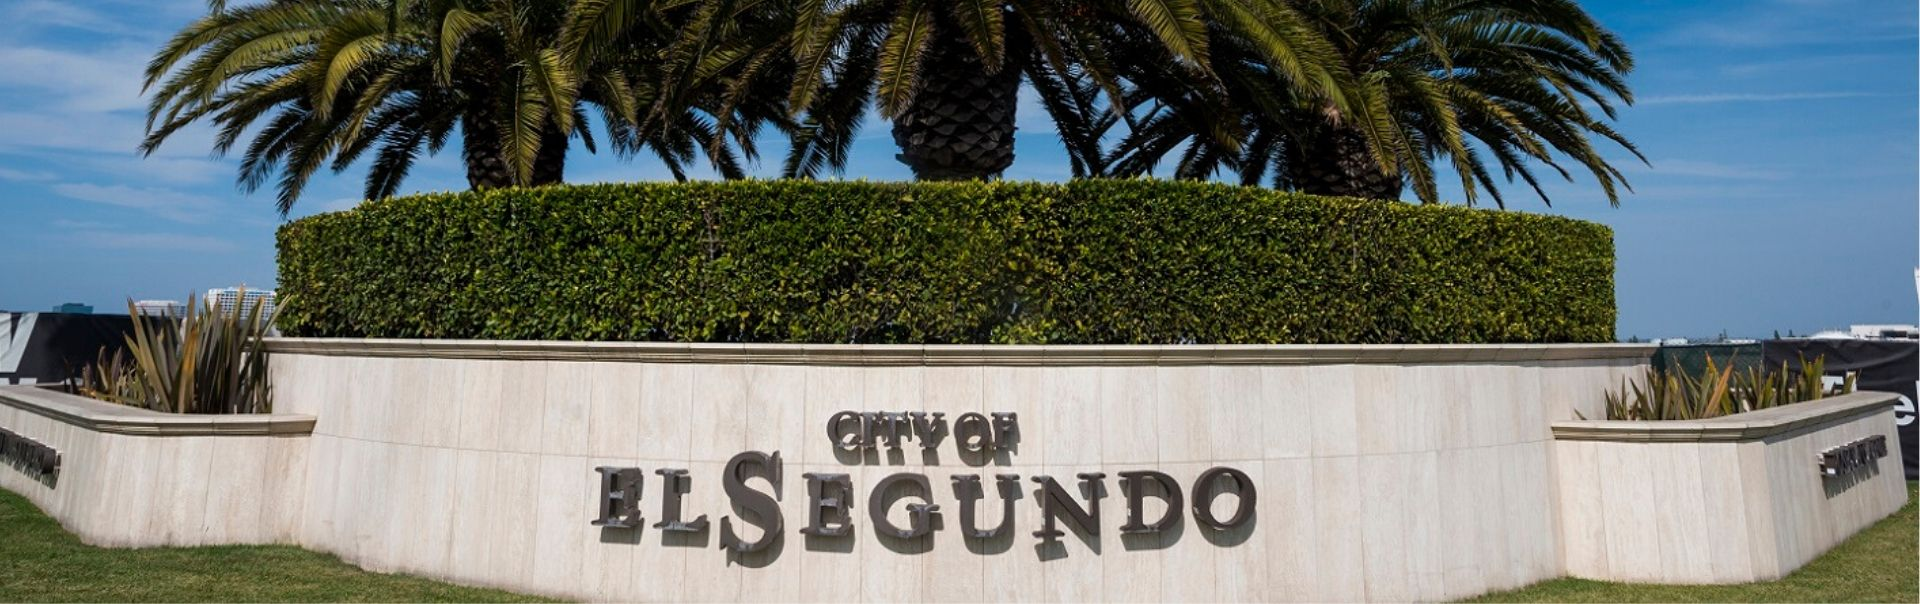 City of El Segundo Welcome sign w trees